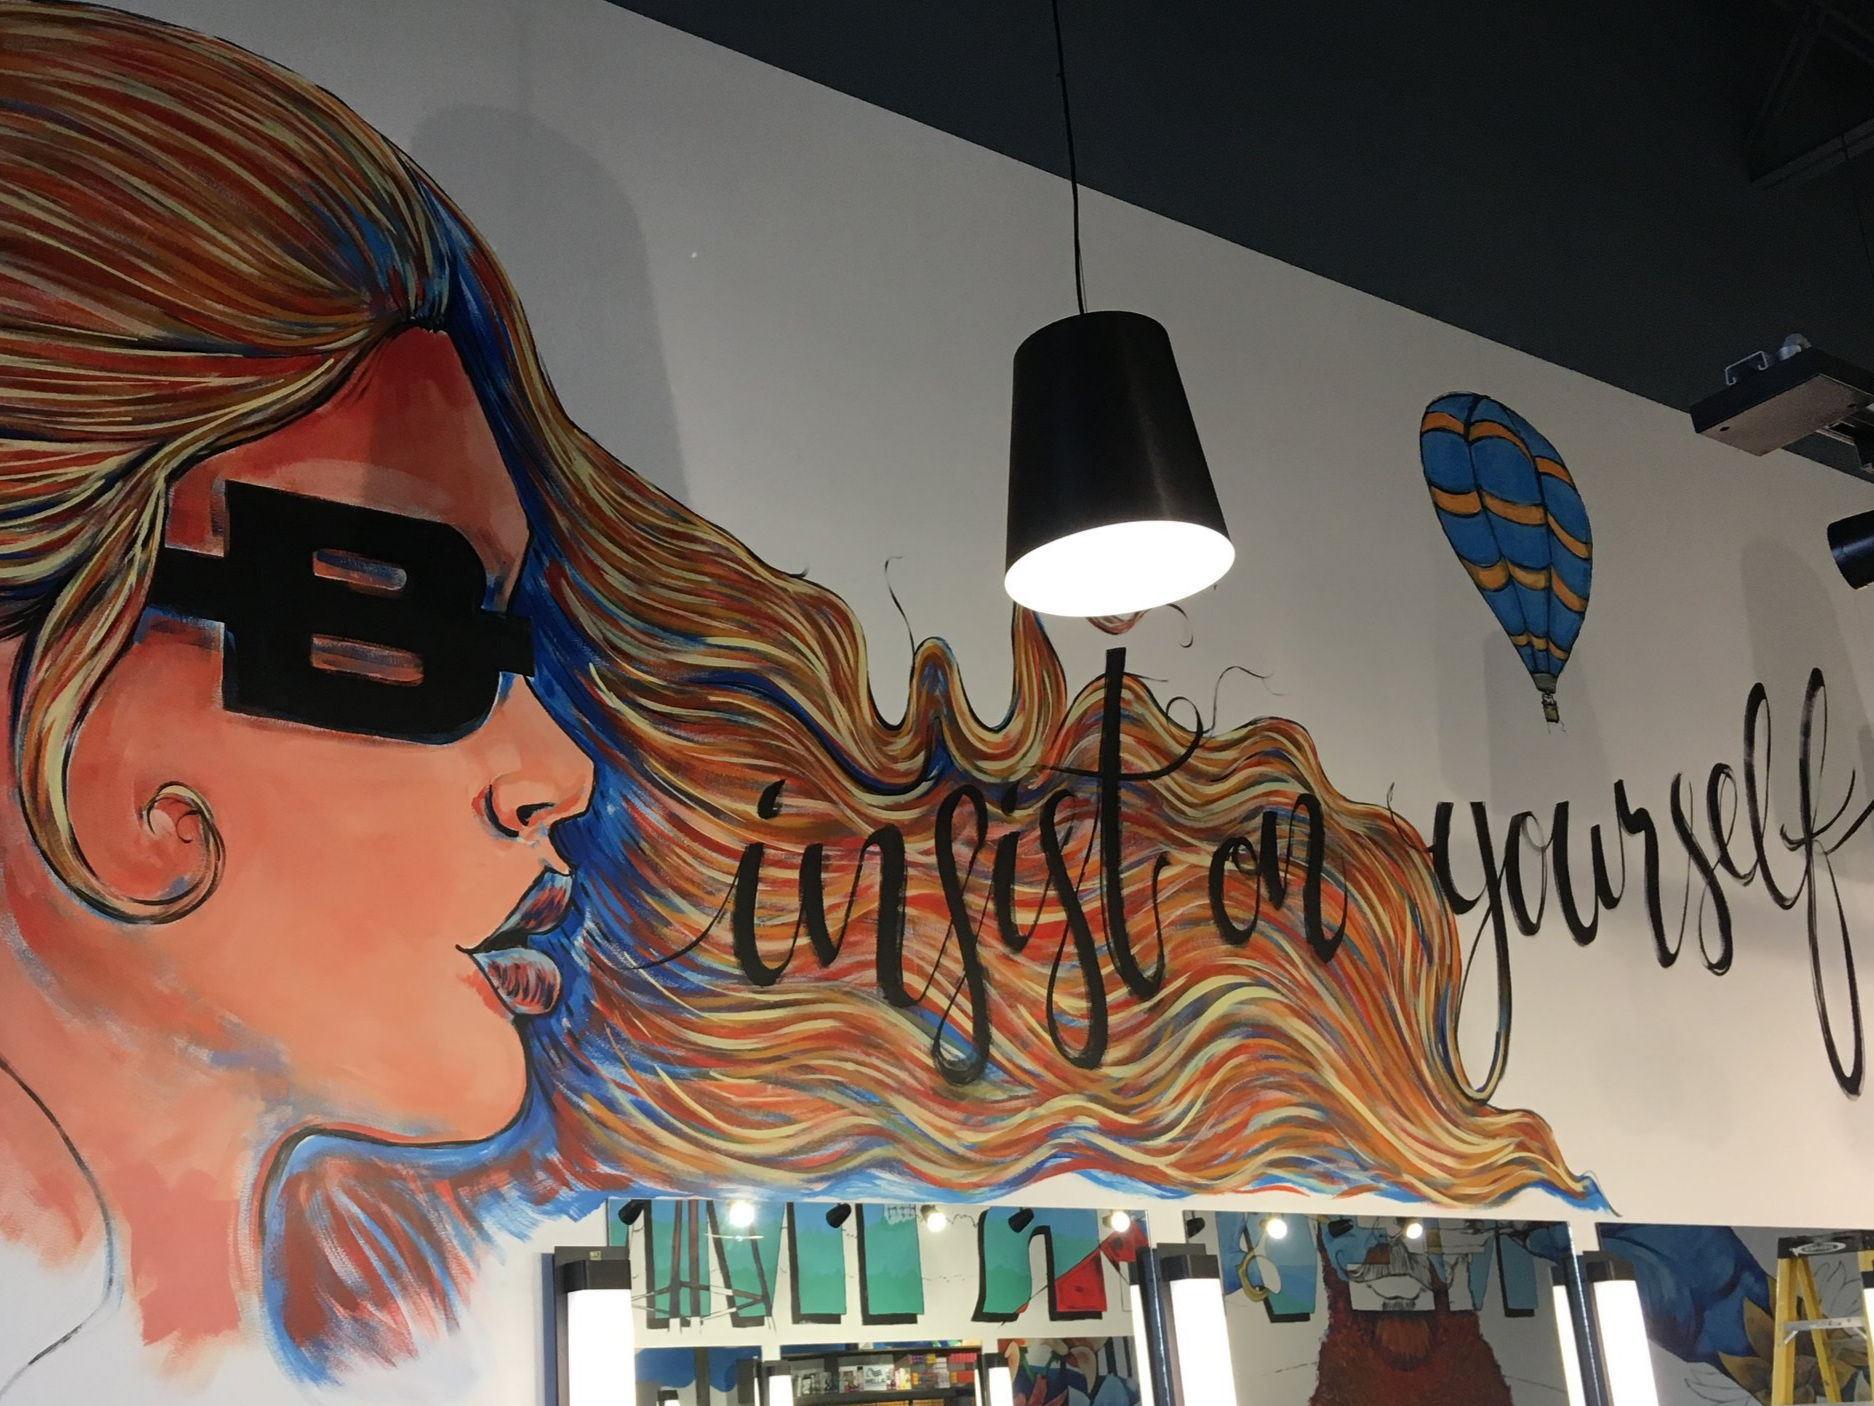 beautify - ORIGINAL HAND PAINTED MURALS Utilize premium materials and procure equipment. Offer anti-graffiti coating and maintenance plans. Operate under crazy tight deadlines and in all sorts of weather. Work with client supplied design or create an original mural that fits your needs.